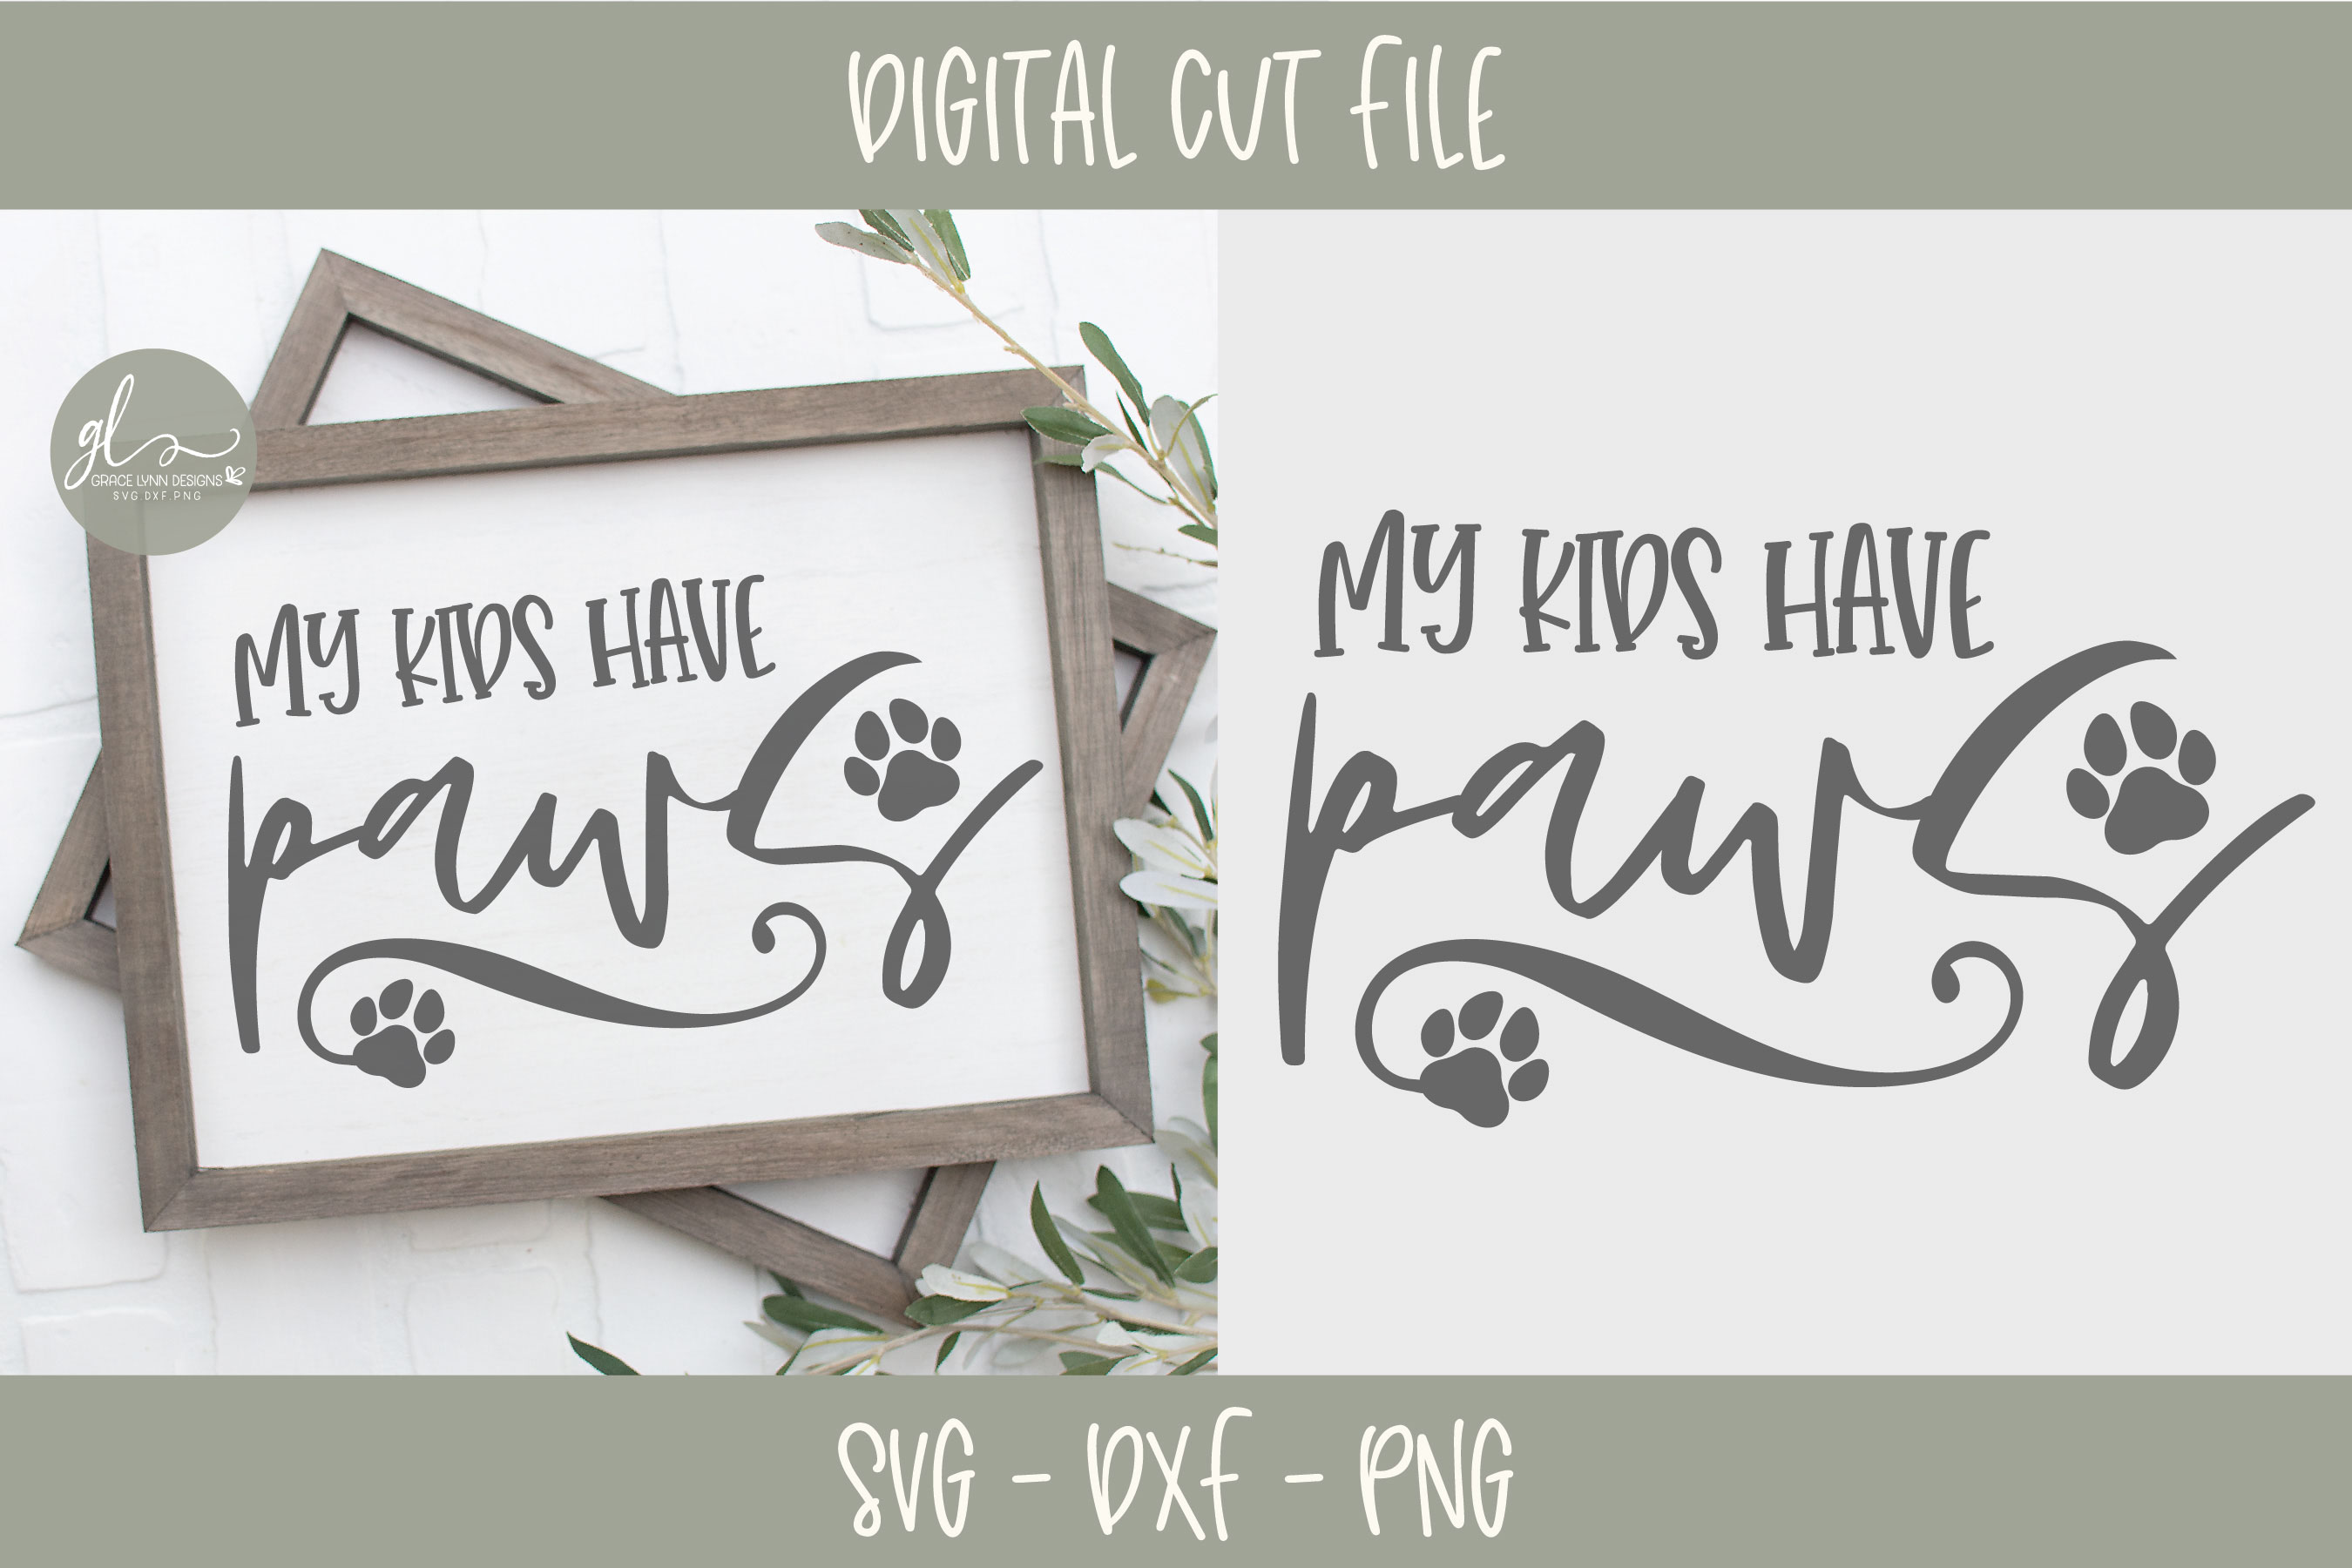 My Kids Have Paws - SVG example image 1